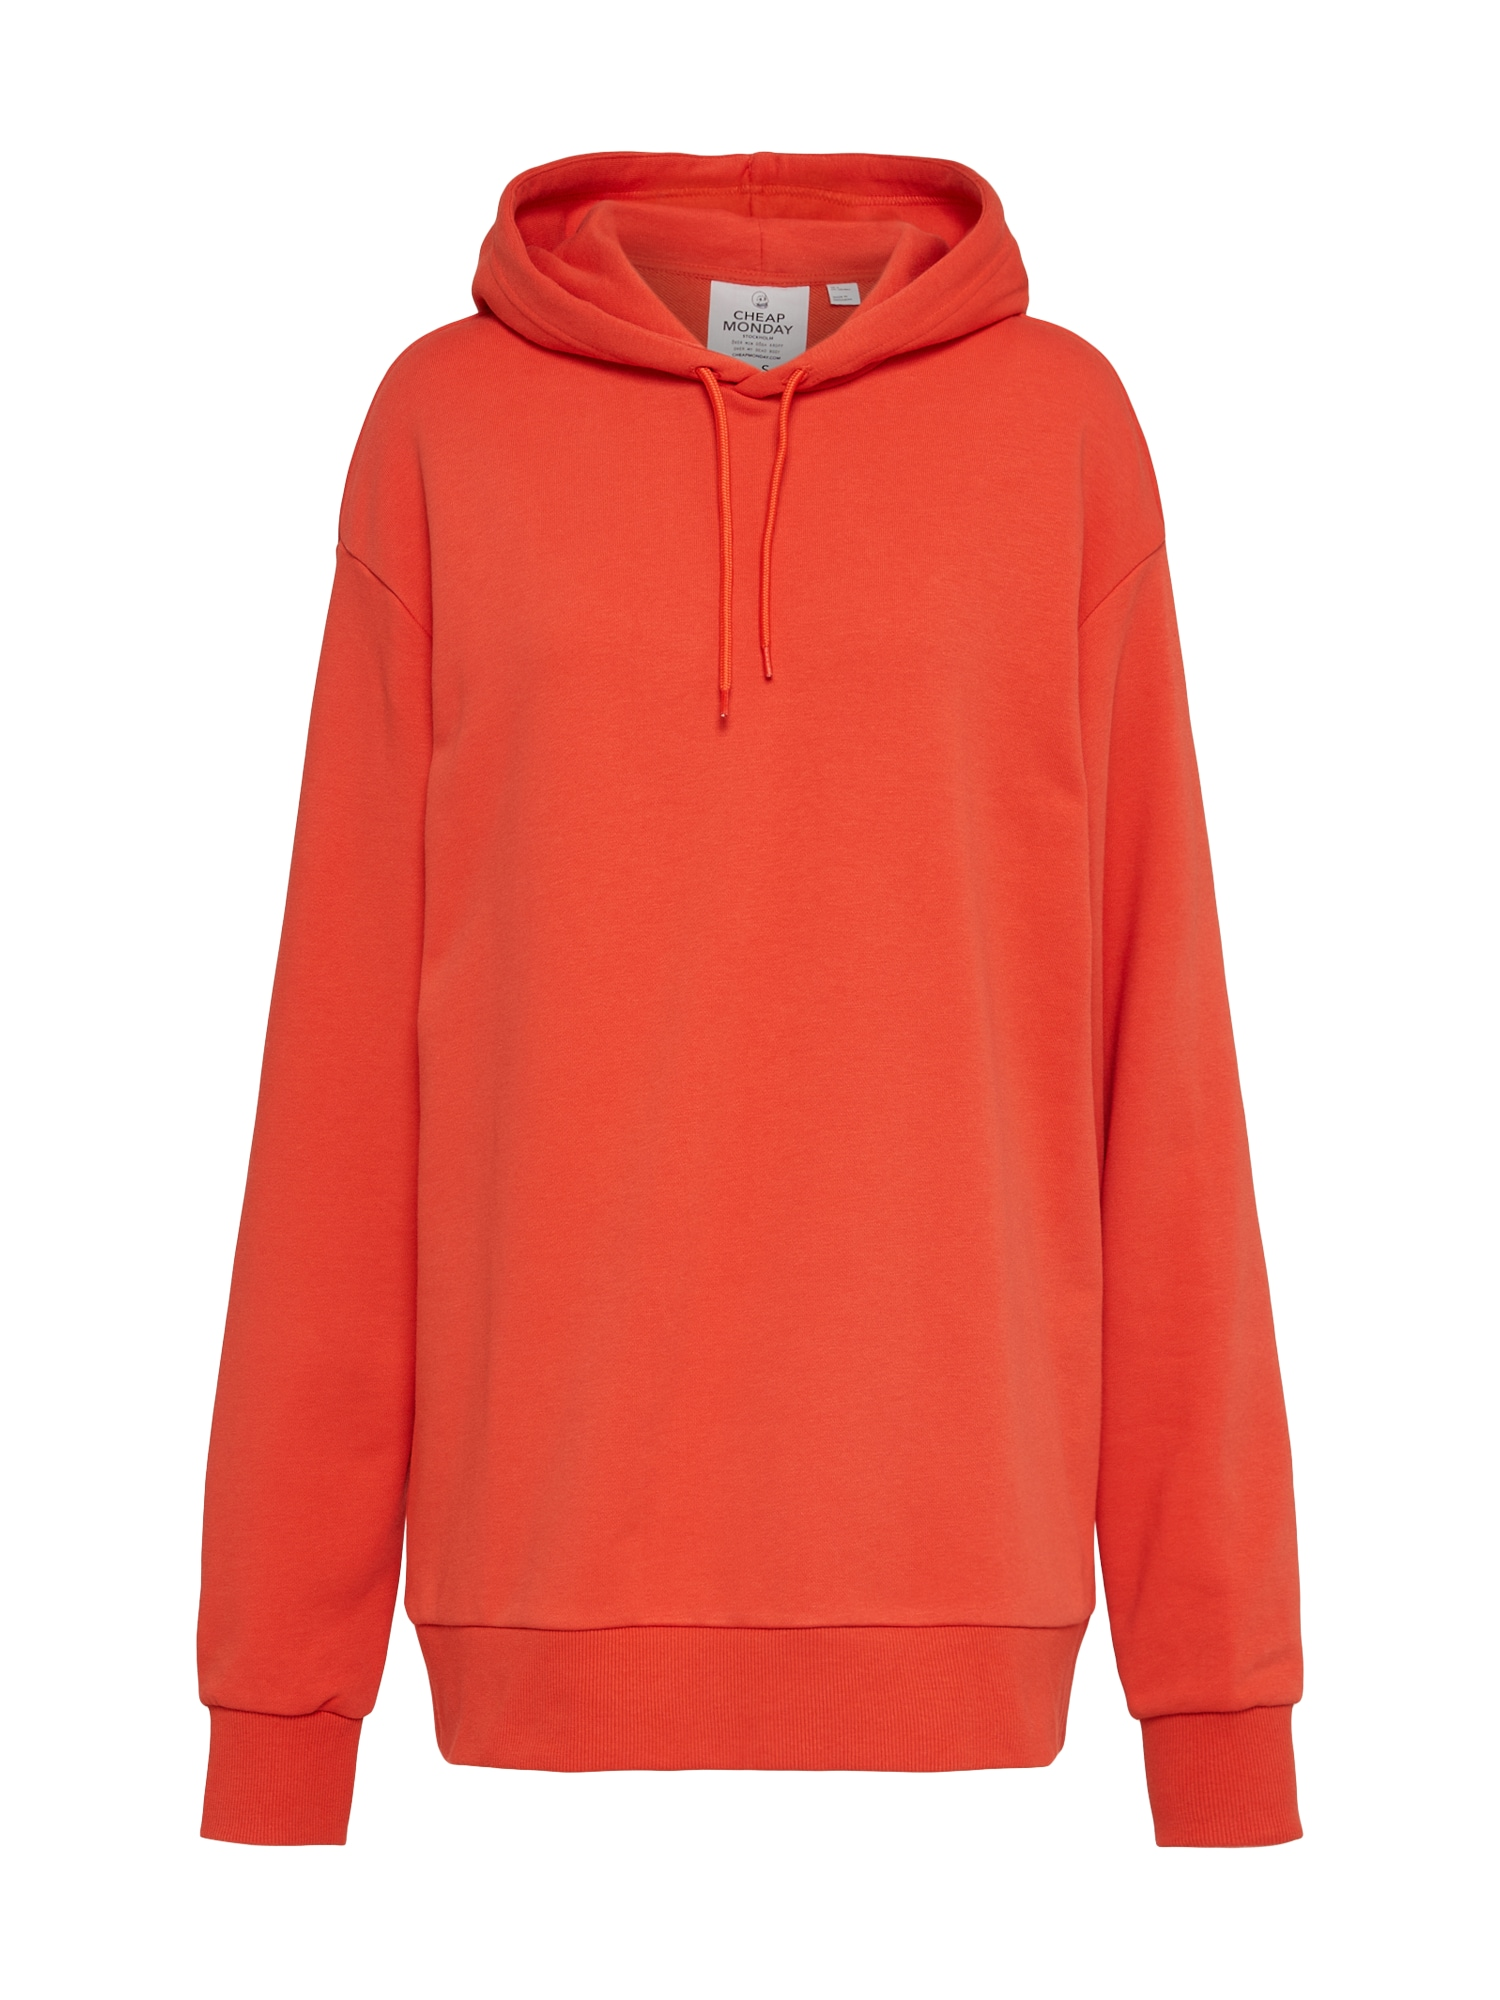 CHEAP MONDAY Dames Sweatshirt rood